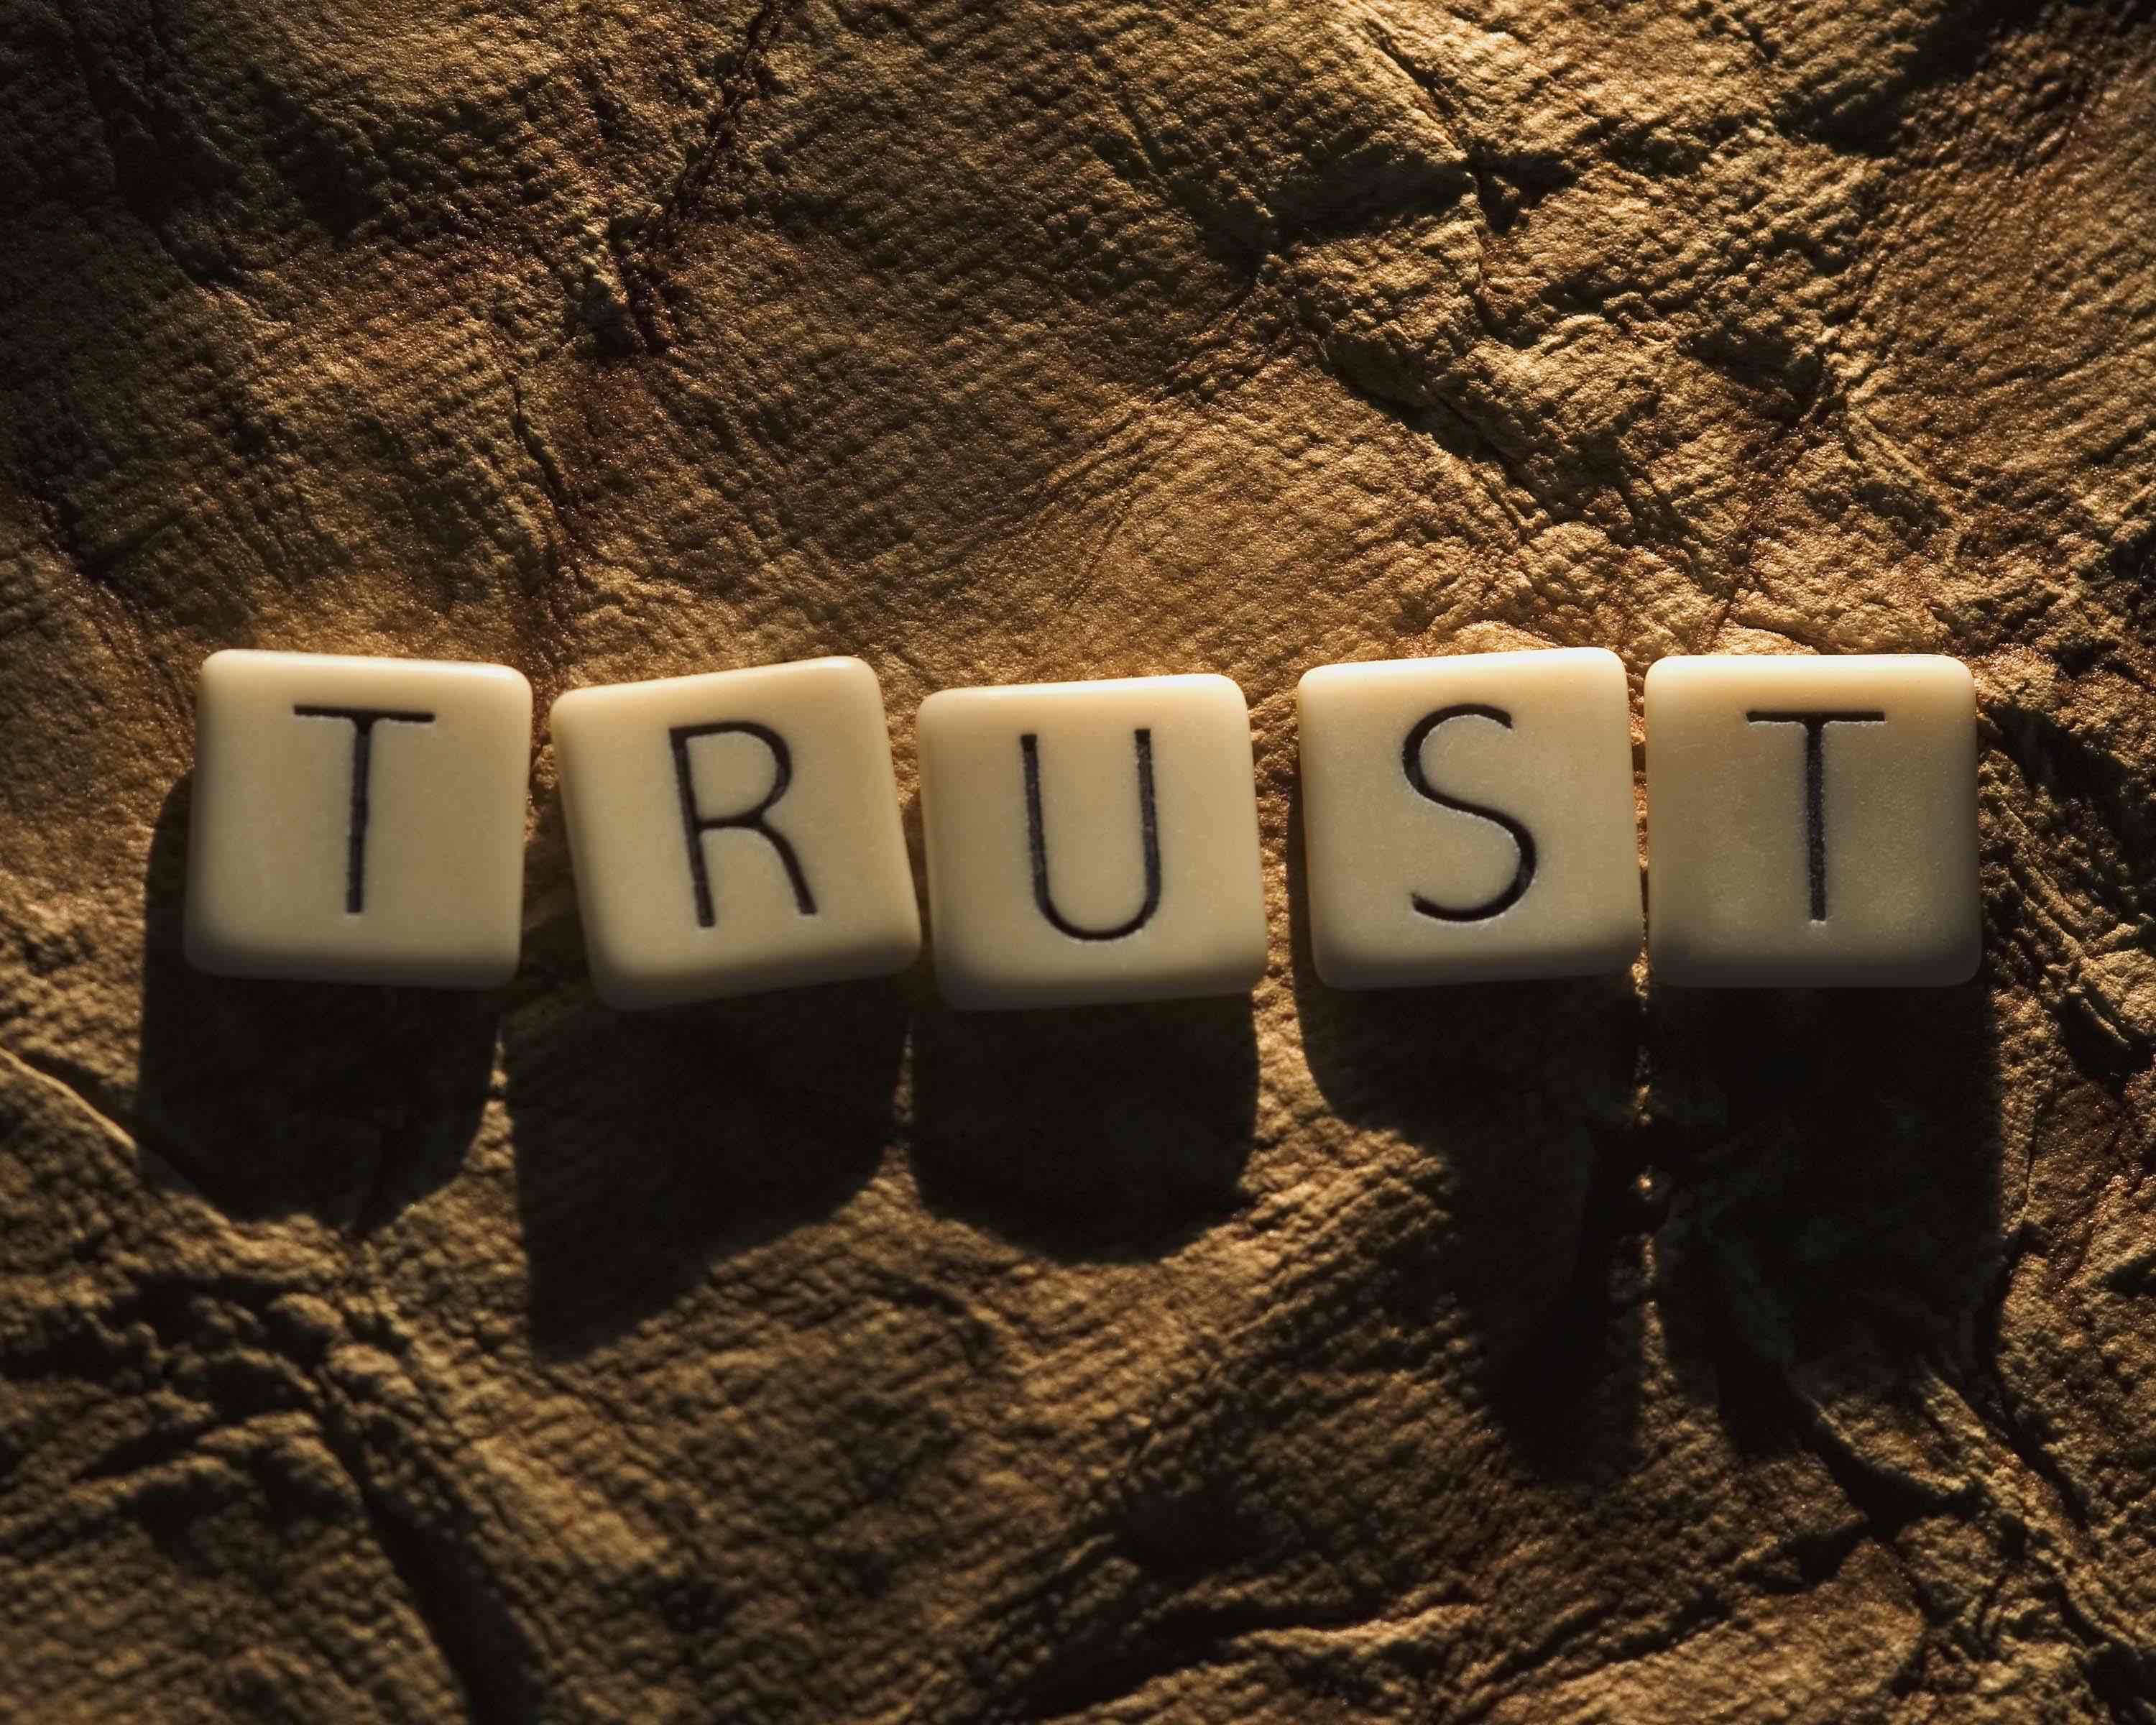 trust  Customers Demand Brands to Prove Themselves Trustworthy